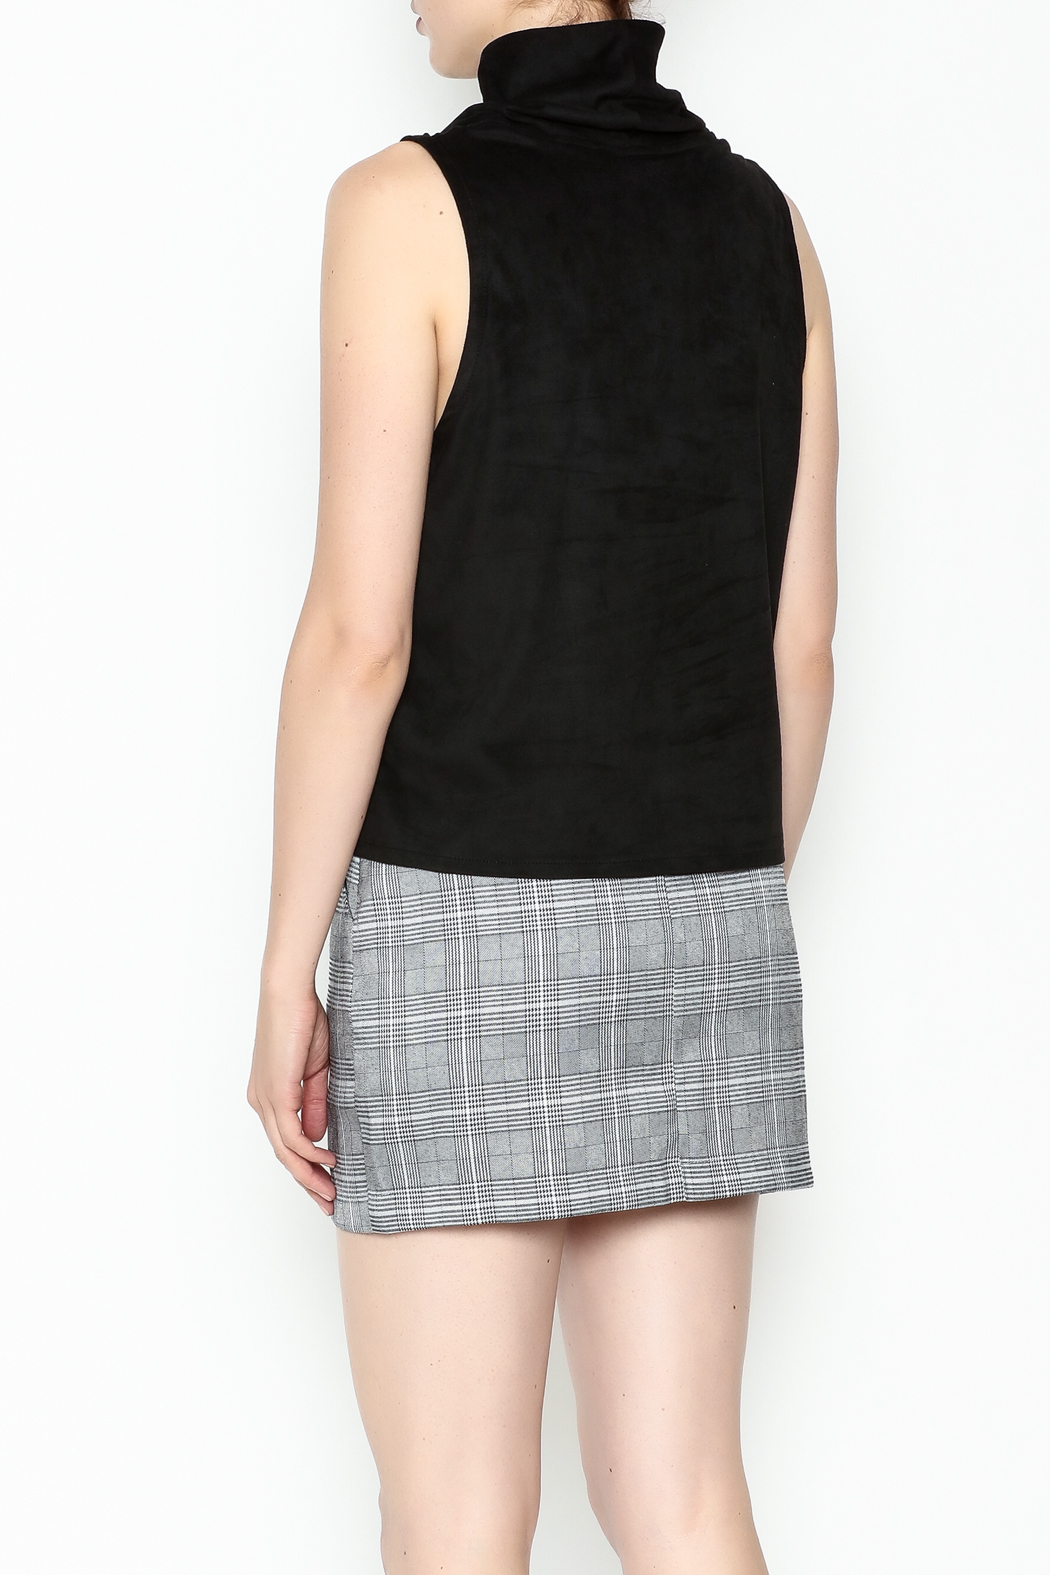 Jack by BB Dakota Faux Suede Top - Back Cropped Image